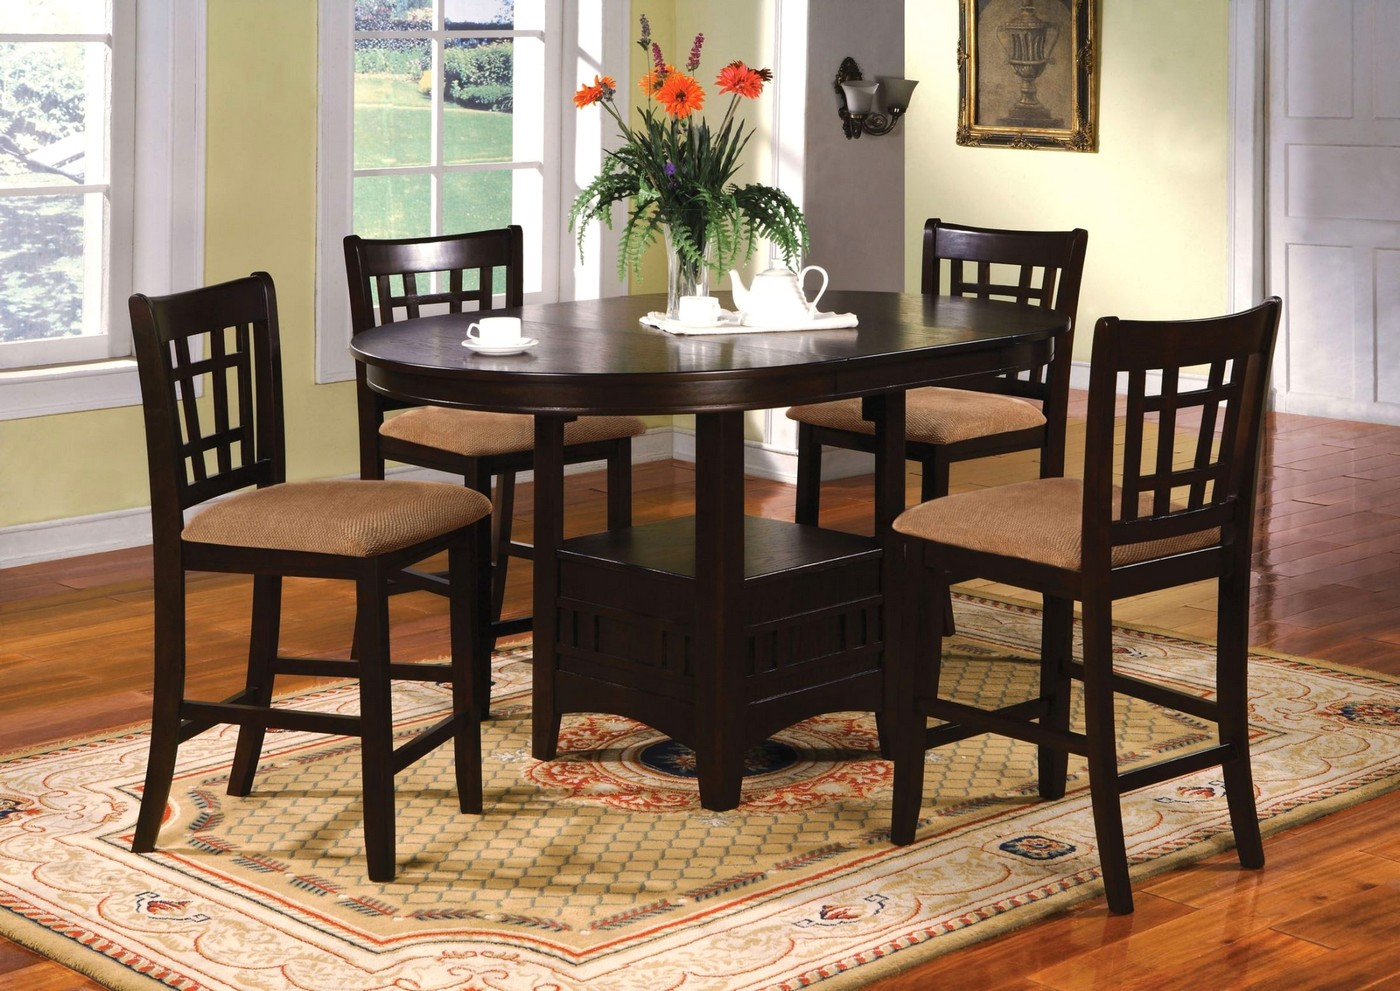 Dining Table Height Cm Metropolis Transitional Espresso Counter Height Dining Set